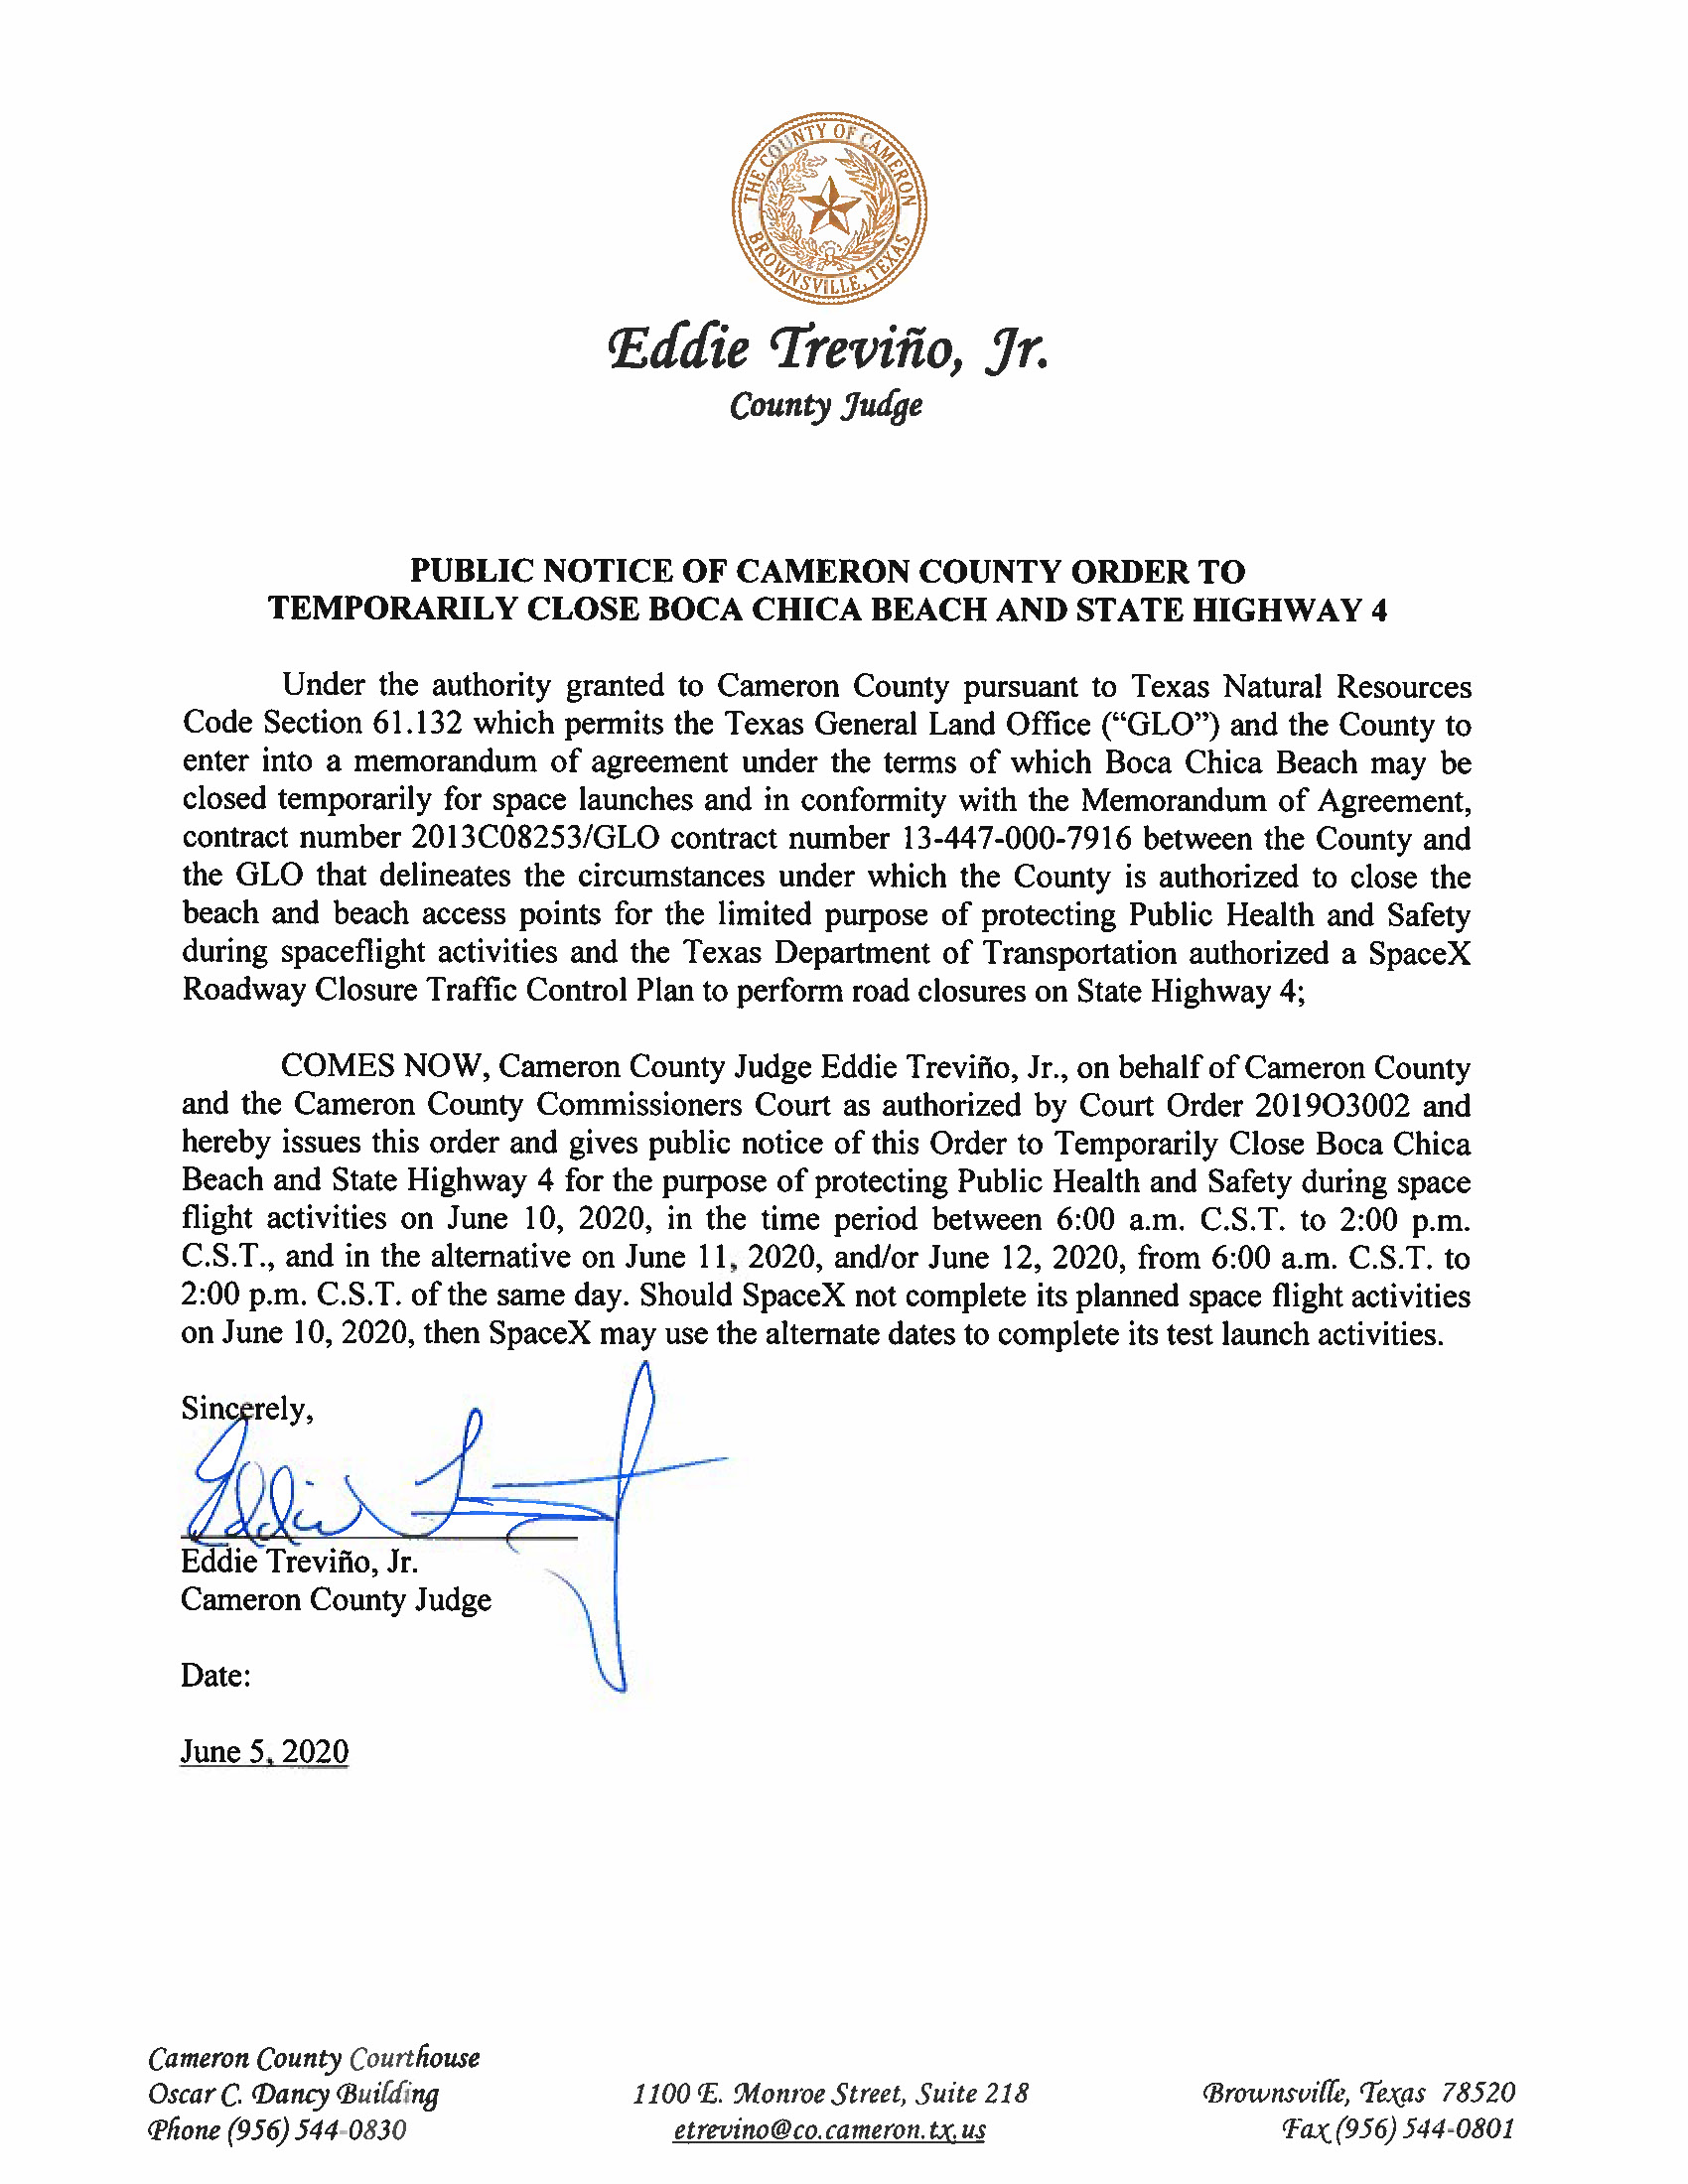 PUBLIC NOTICE OF CAMERON COUNTY ORDER TO TEMP. BEACH CLOSURE AND HWY.06.10.20 Page 1